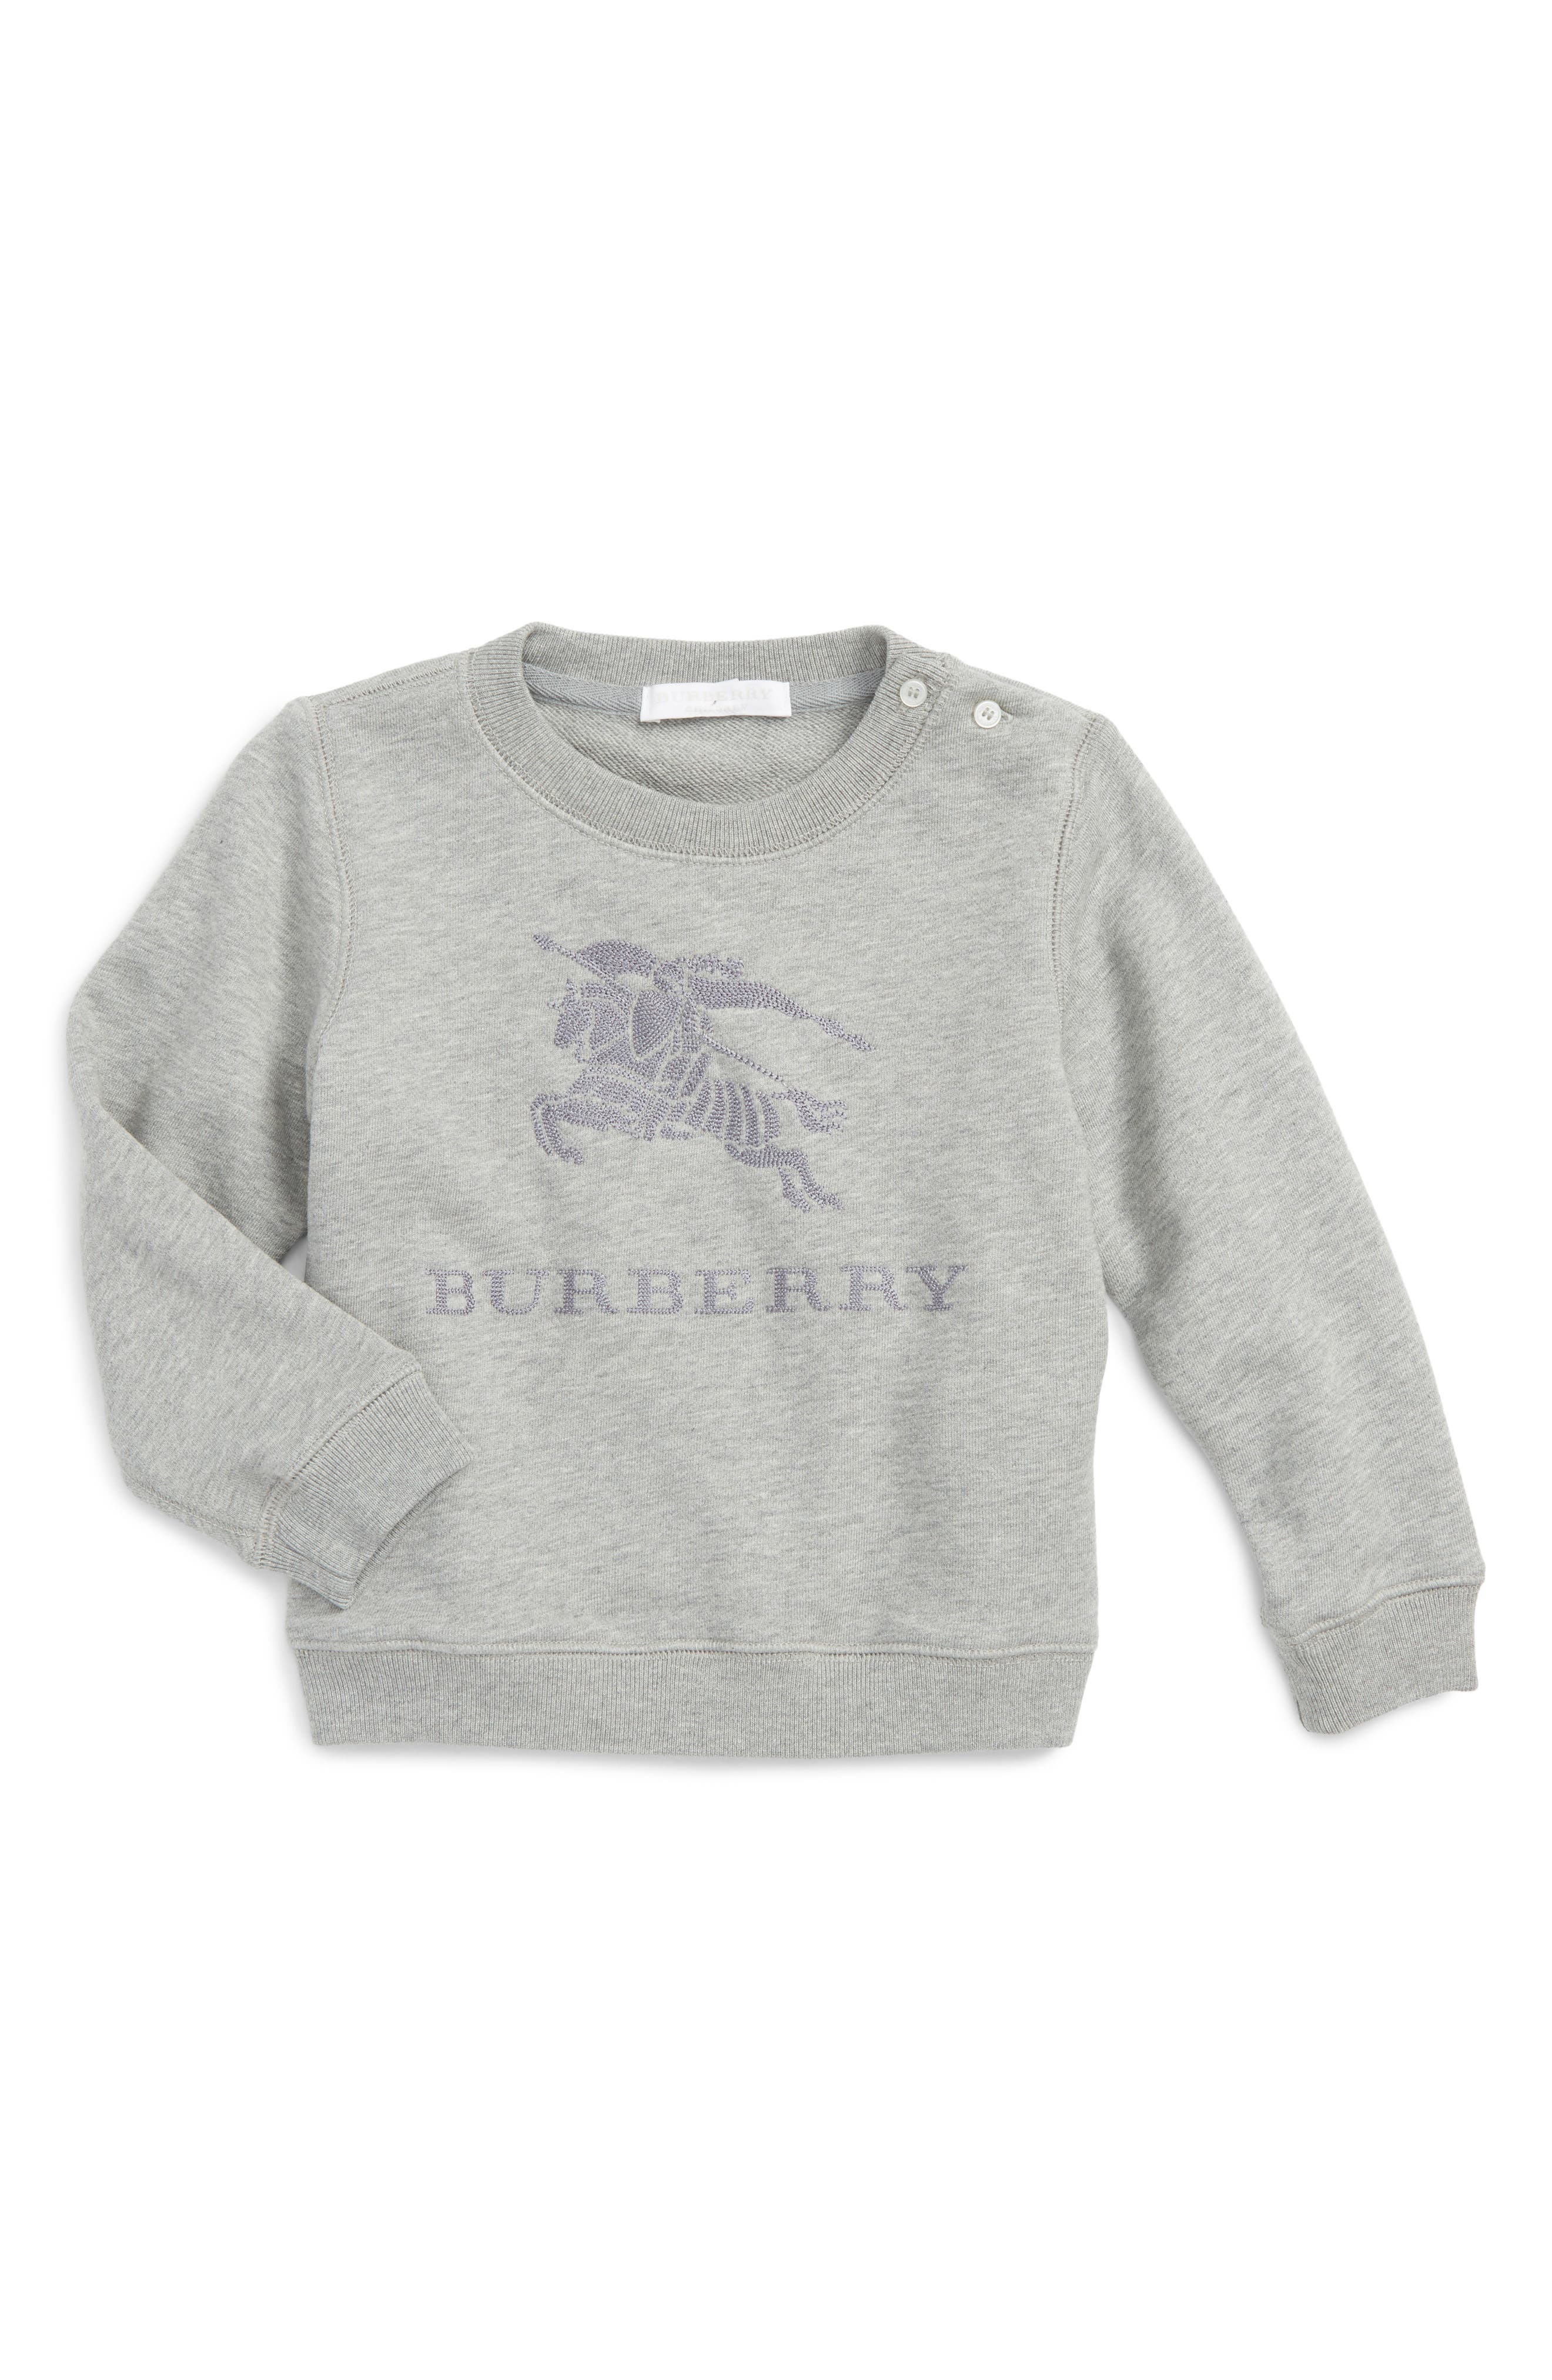 Alternate Image 1 Selected - Burberry Tom Embroidered Pullover (Toddler Boys)